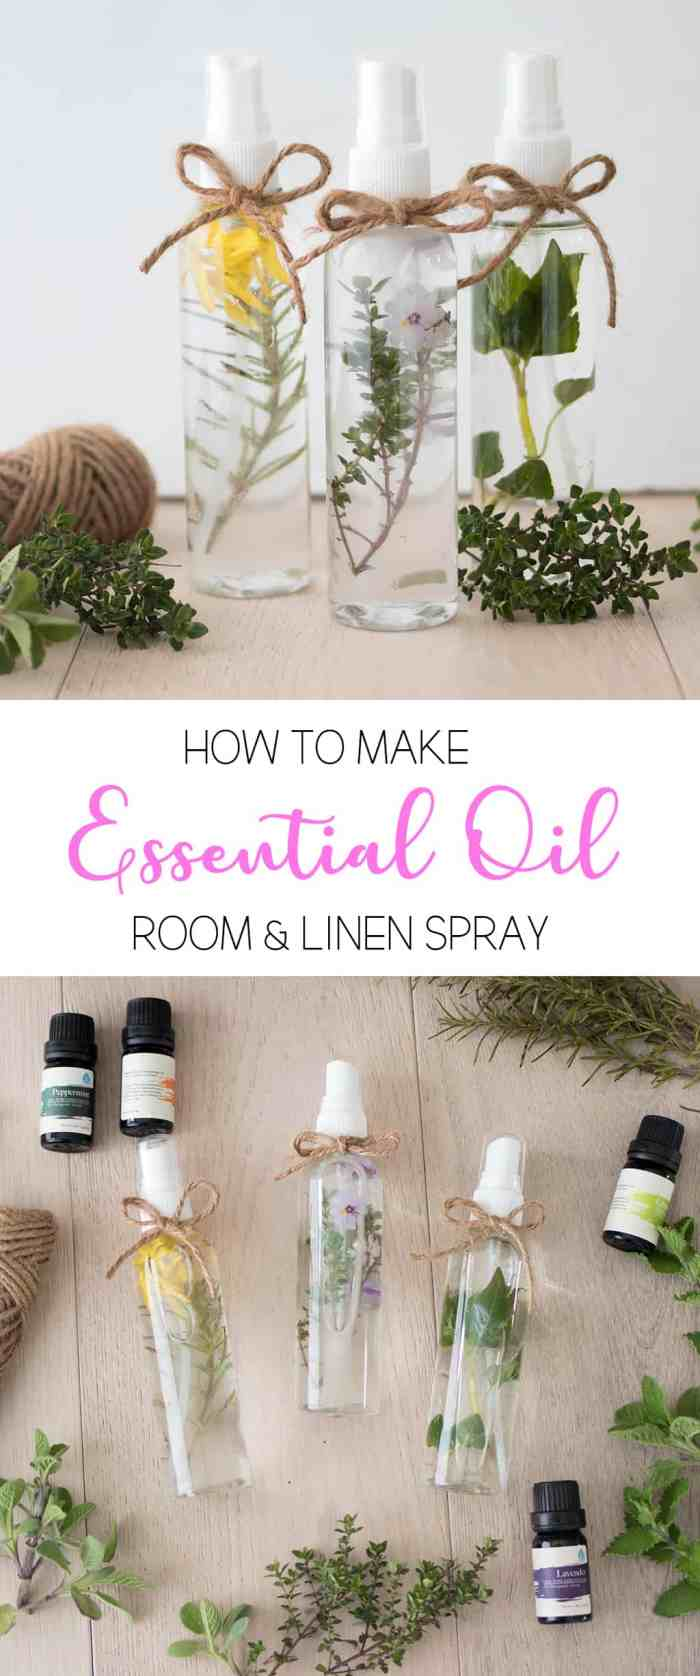 How to Make Essential Oil Room and Linen Spray